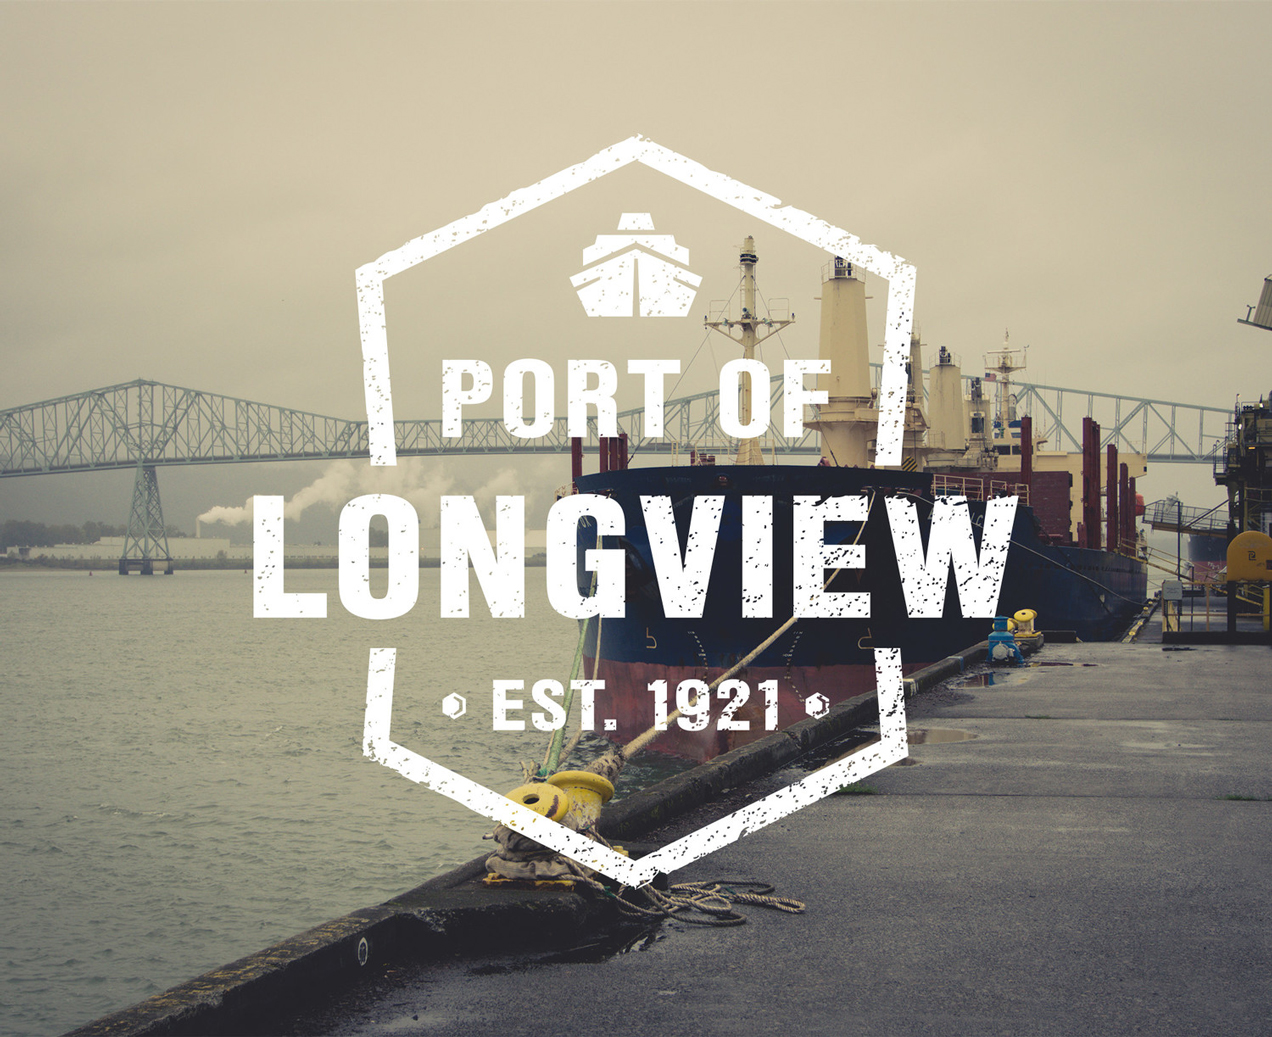 Port of Longview logo and brand design